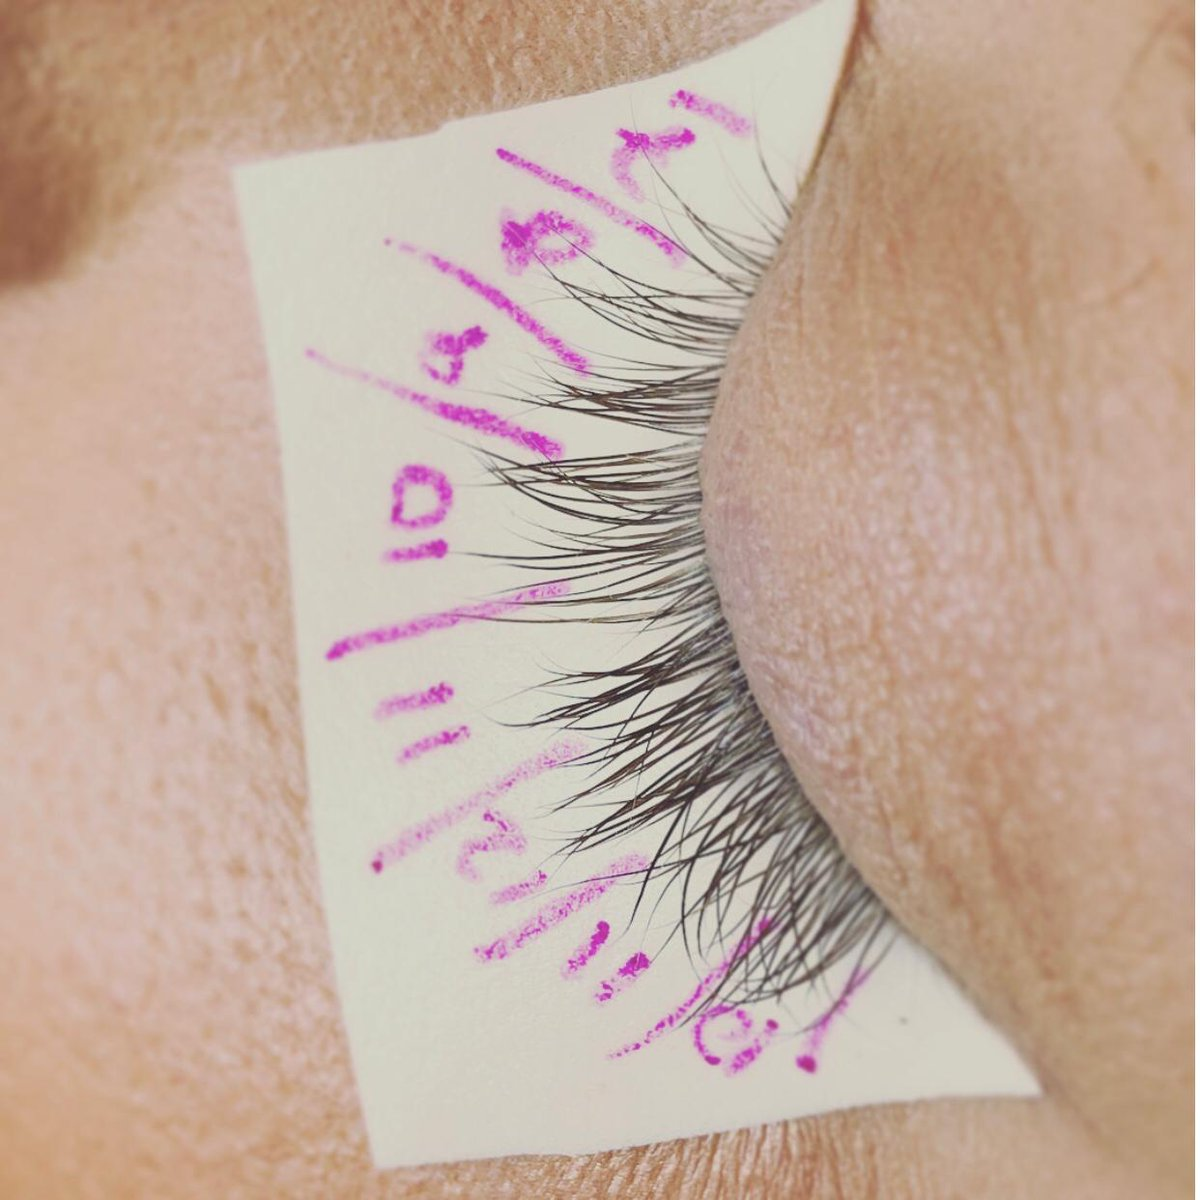 Lash Mapping allows you to determine what length of extension you should use in which part of the lash line  #lashmapping #lashes #beautypic.twitter.com/XiMe3YI0J8